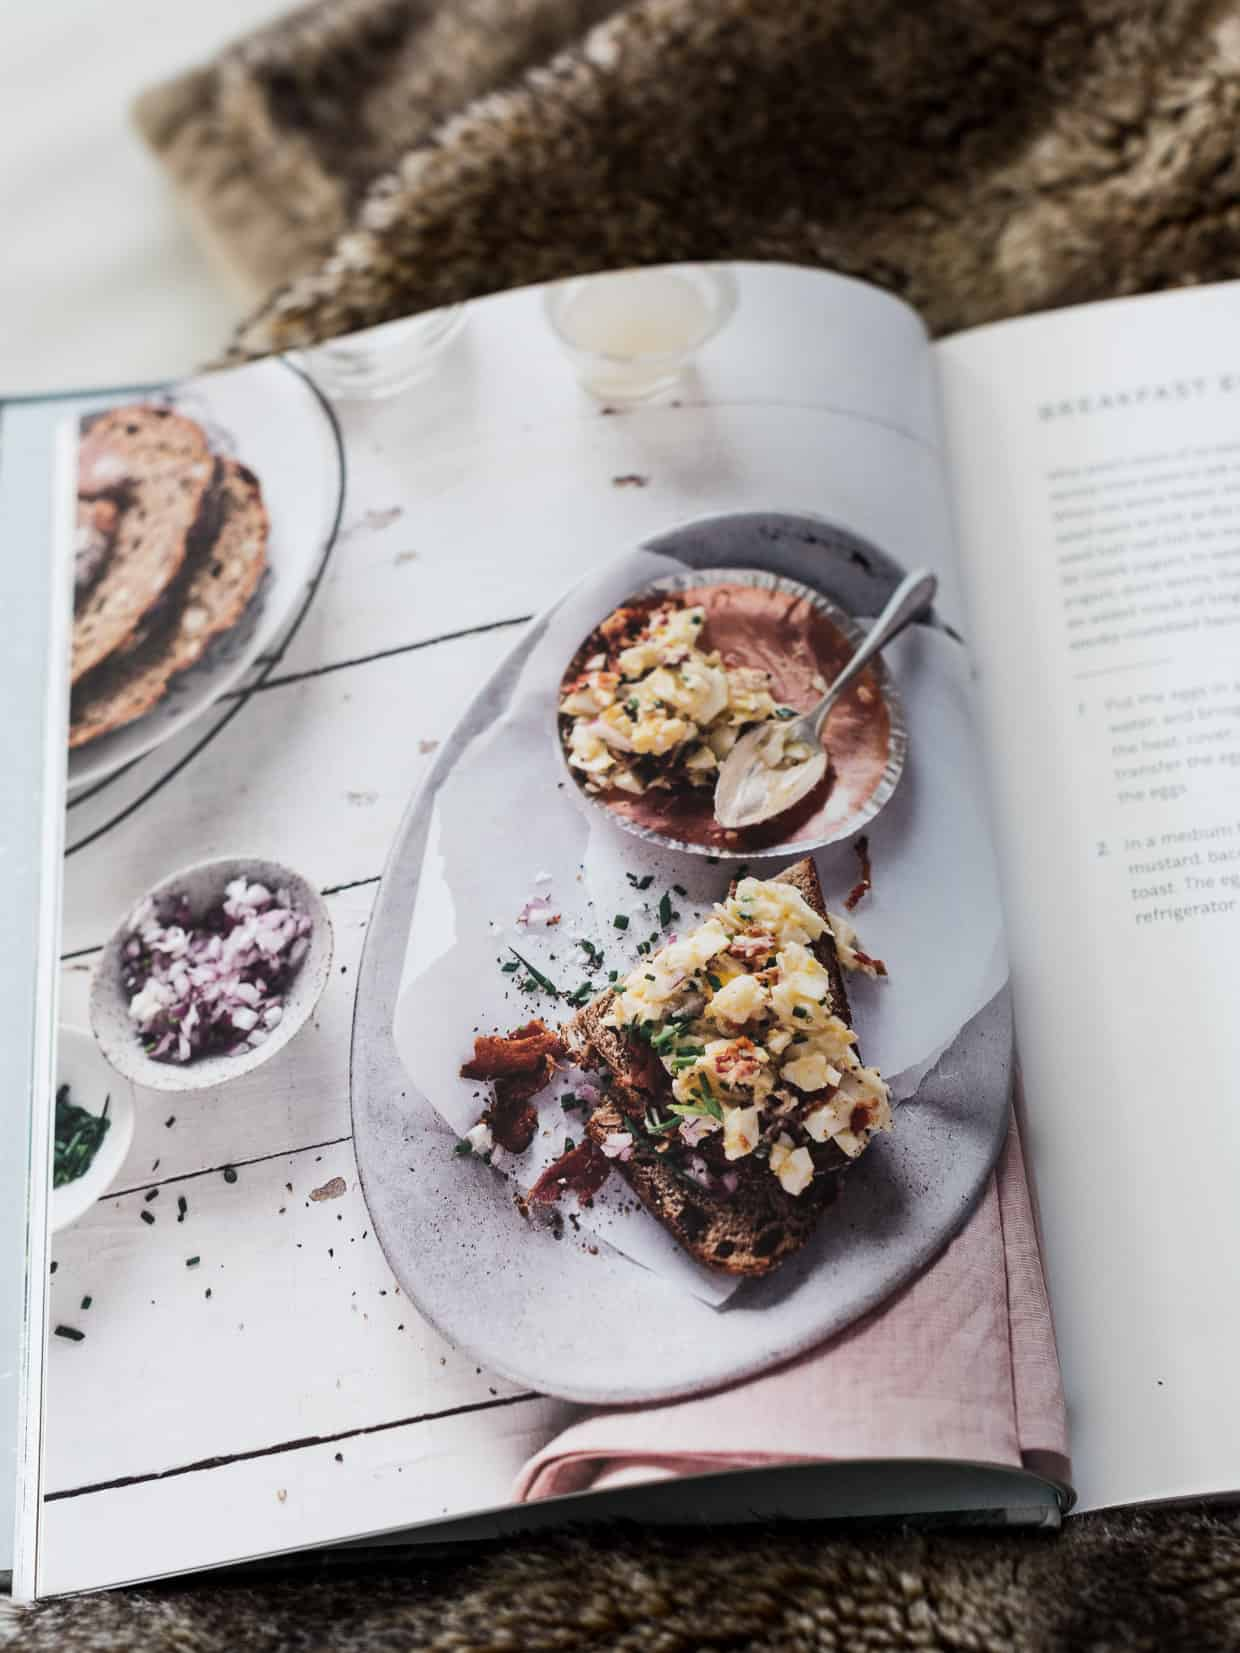 There are so many recipes to try and love in Eating in the Middle by Andie Mitchell.